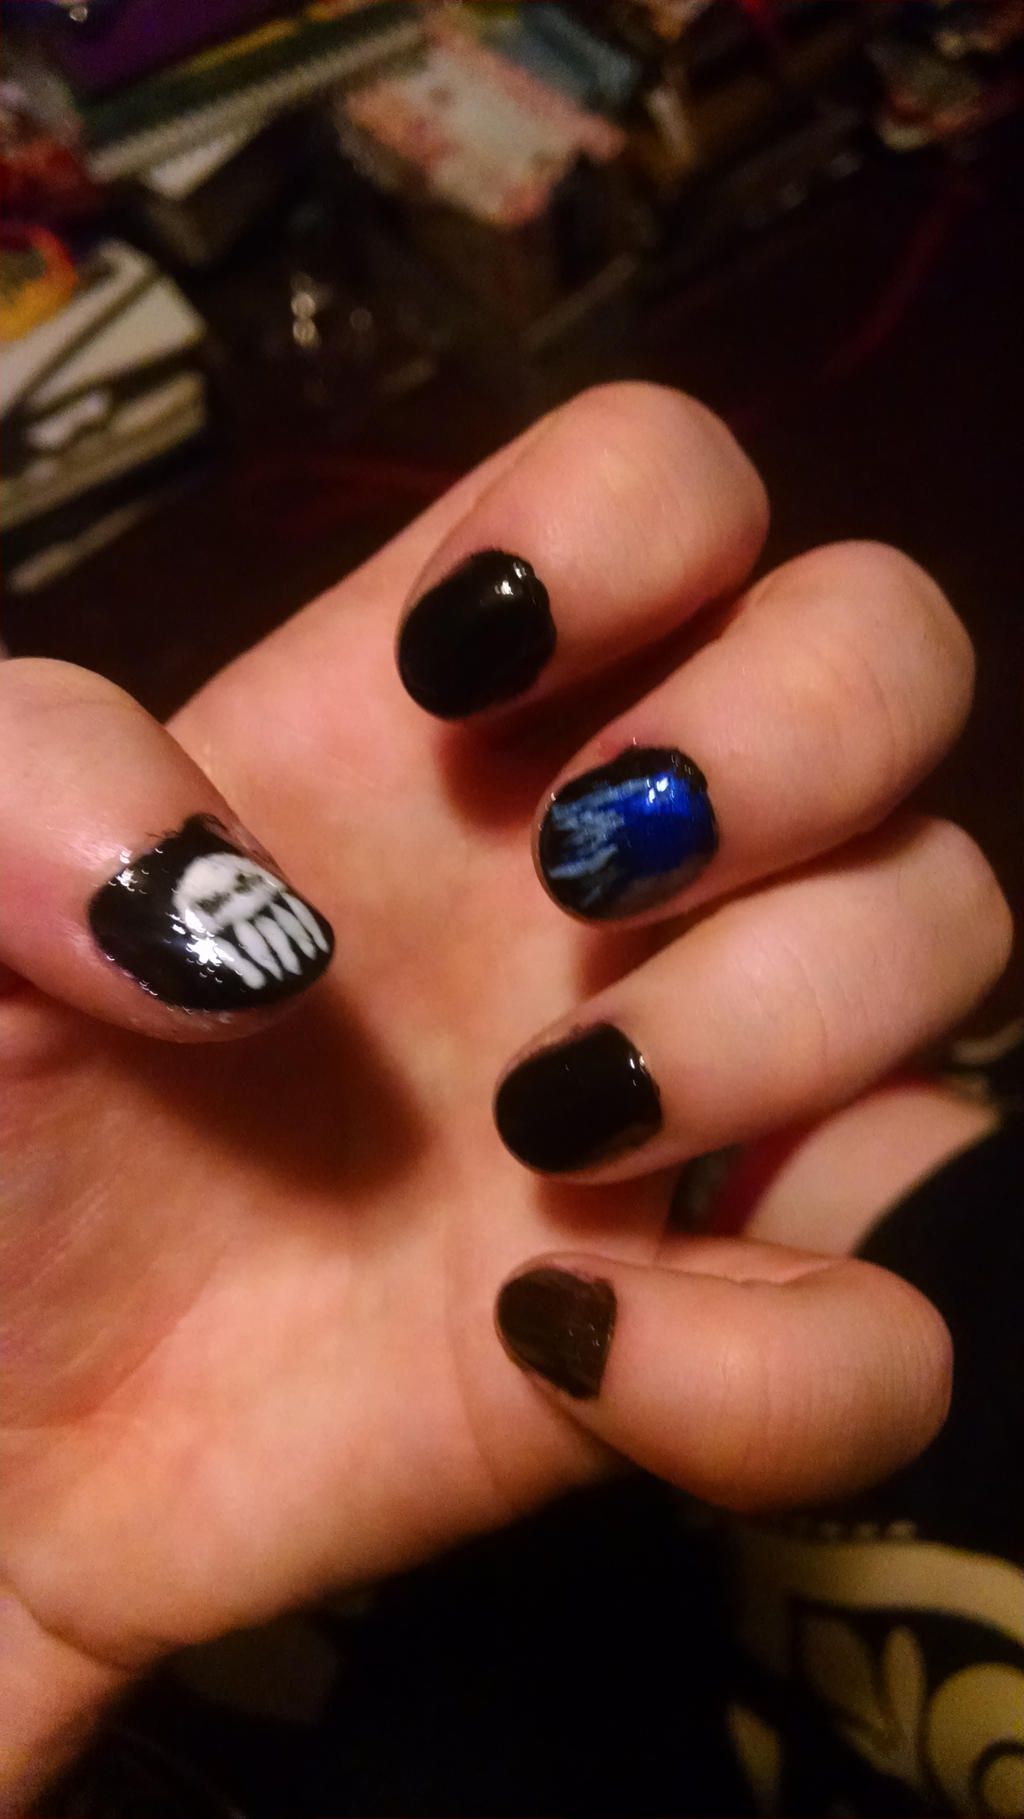 Hades nails! by RavenluvsSesshomaru on DeviantArt